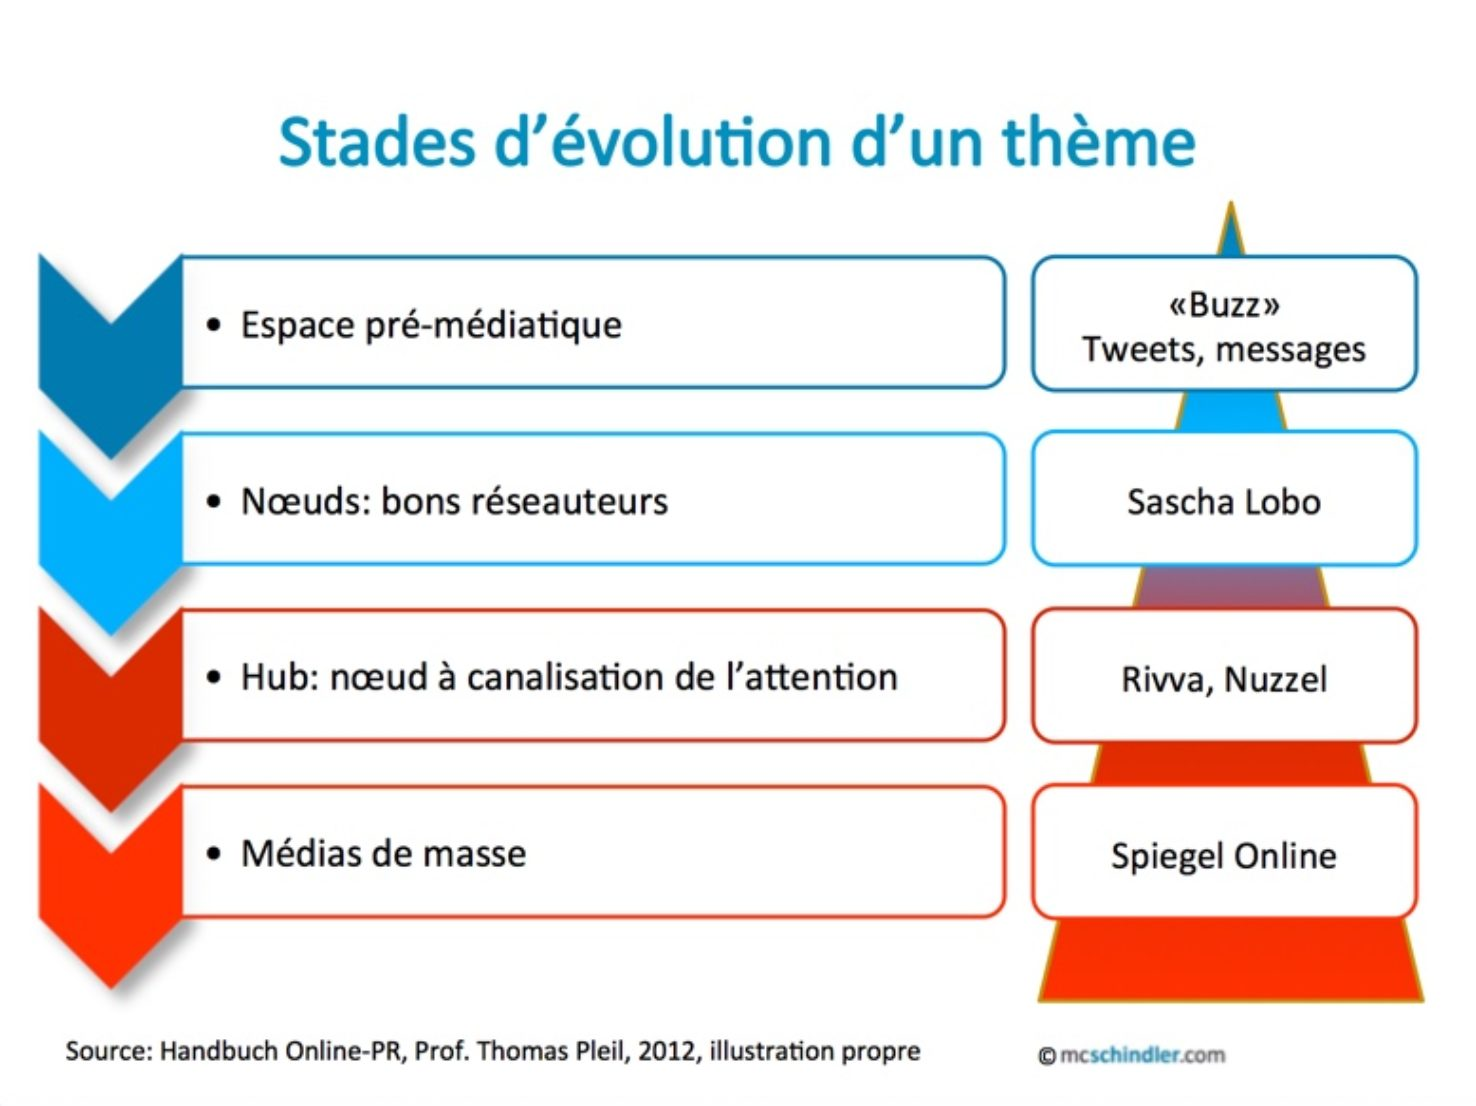 stades-evolution-d-un-theme